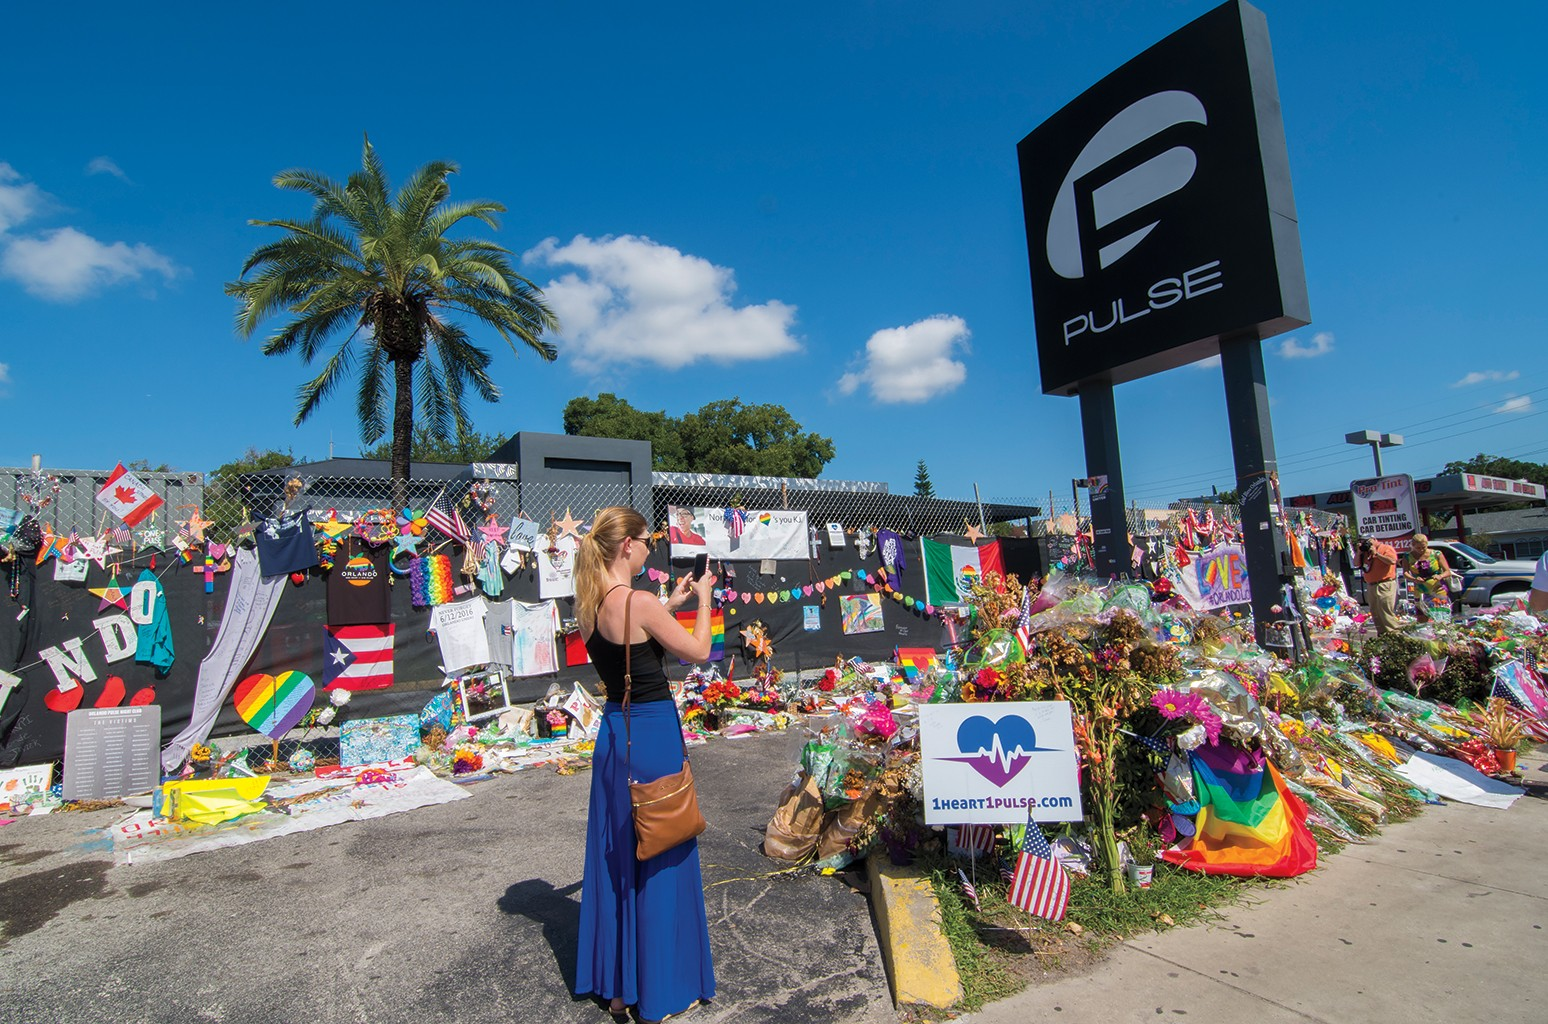 The memorial outside Pulse nightclub on June 12, 2016.